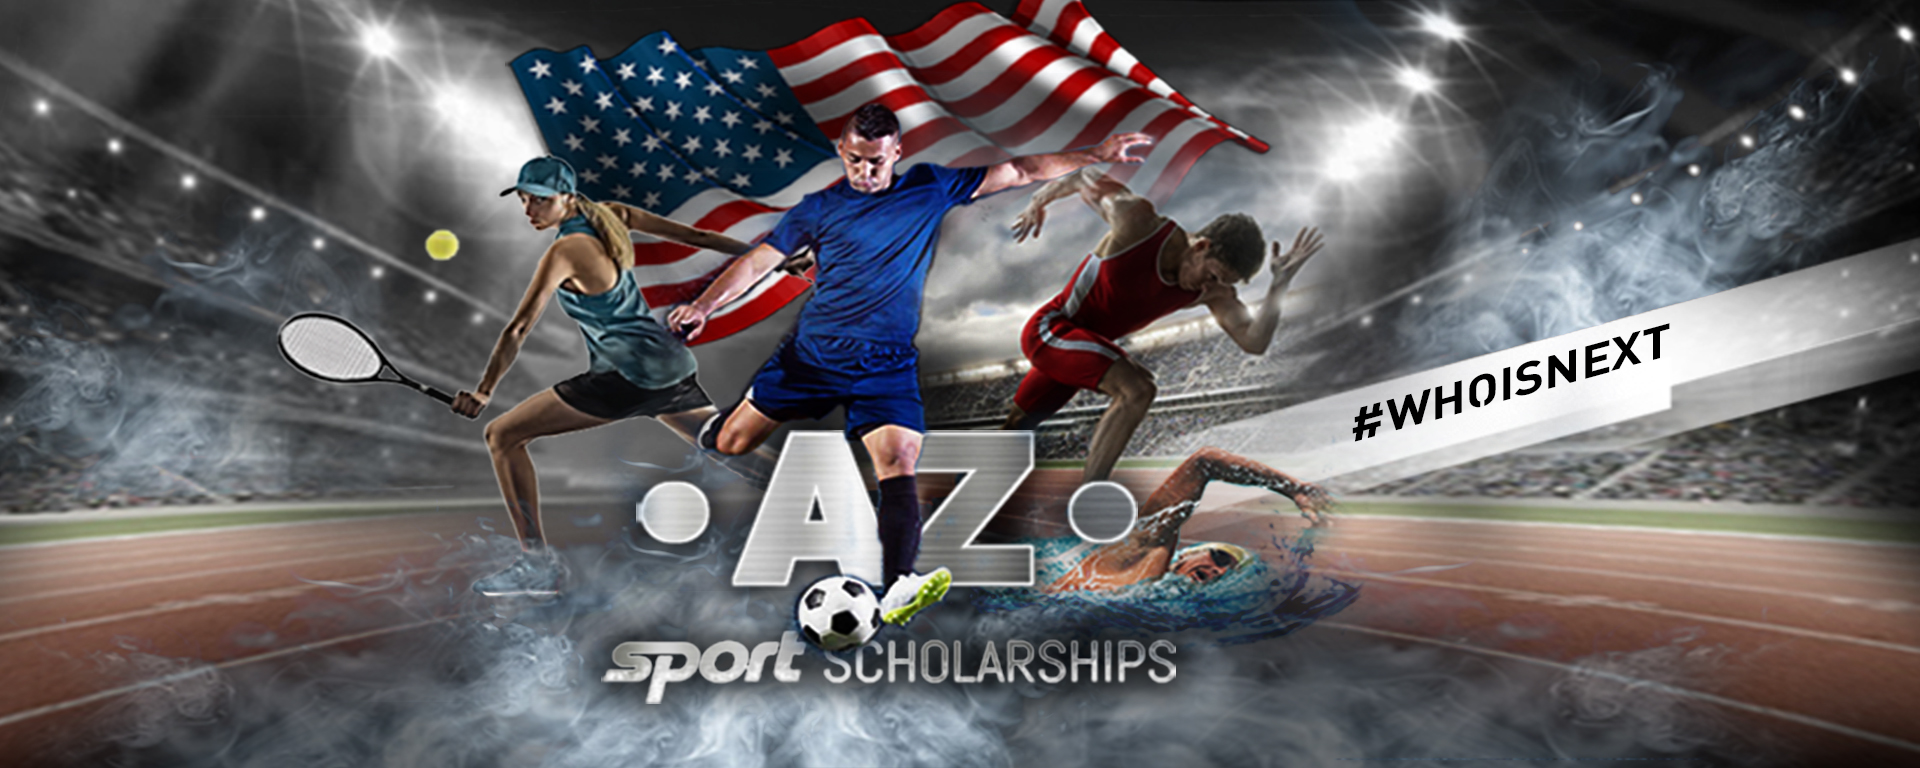 Επικοινωνία - AZ Sport Scholarships - From A to Z How To Sport And Study In The USA